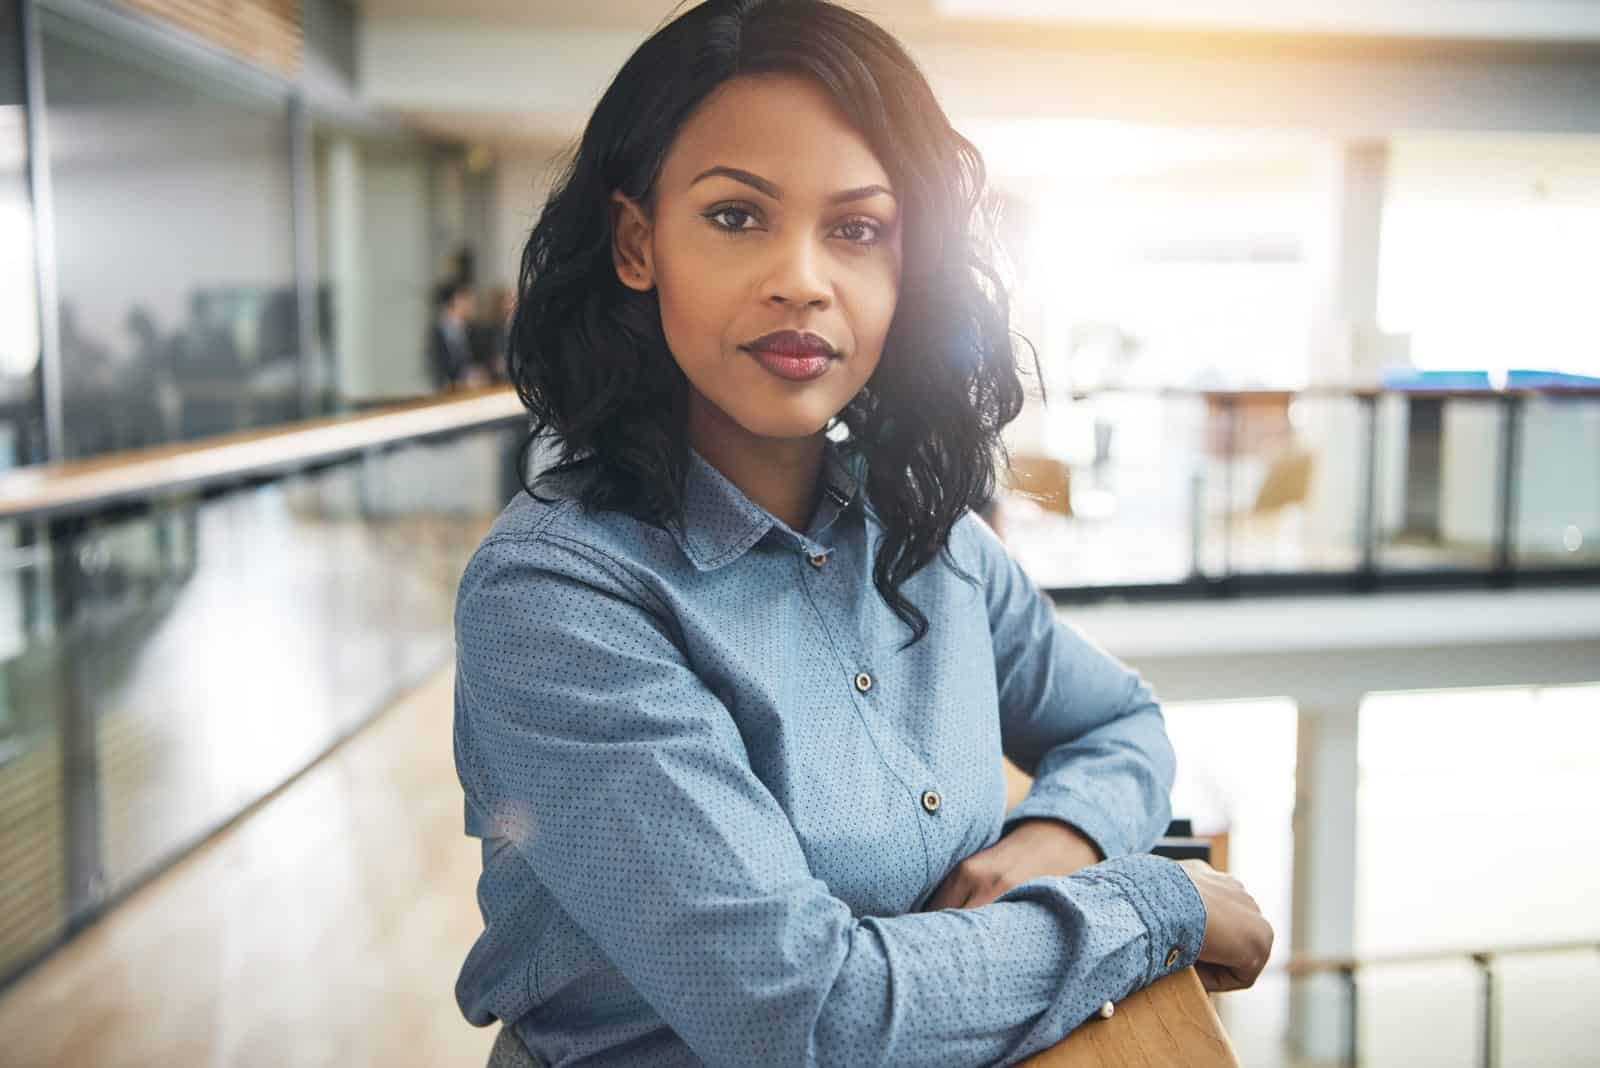 a portrait of an attractive determined black woman